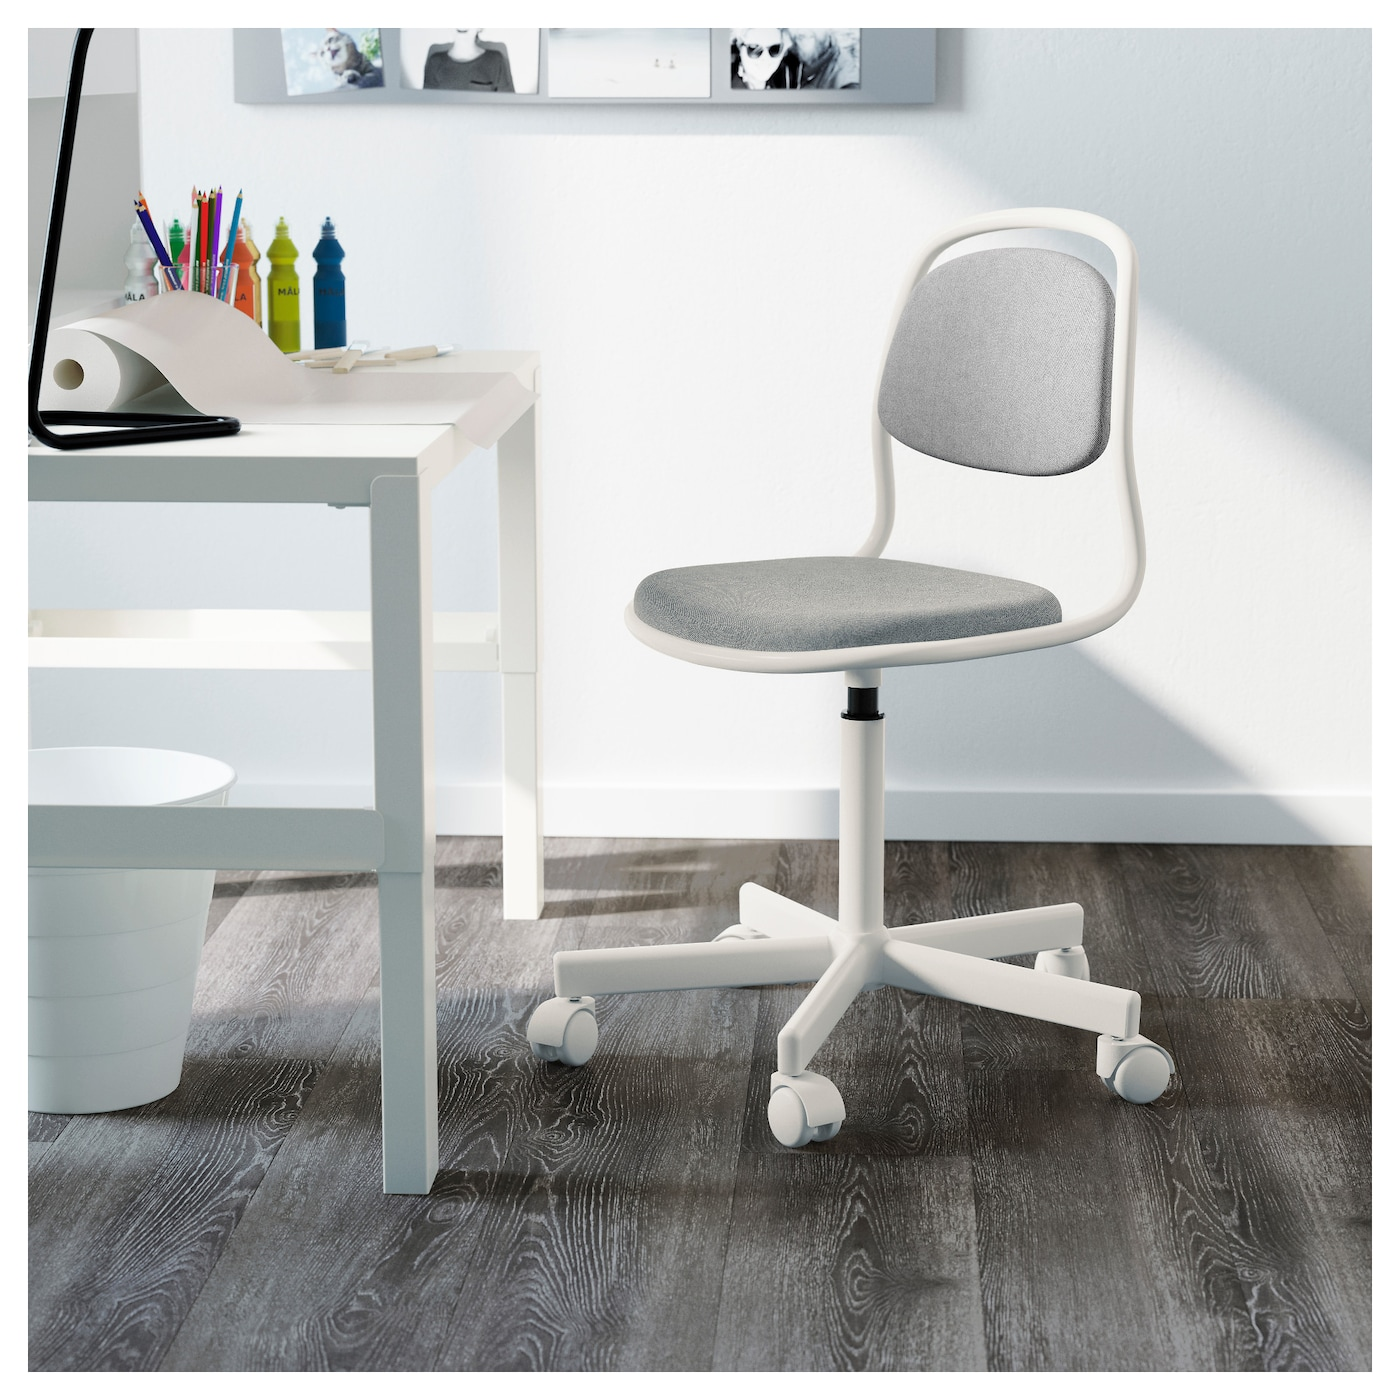 "–RFJ""LL Children s desk chair White vissle light grey IKEA"